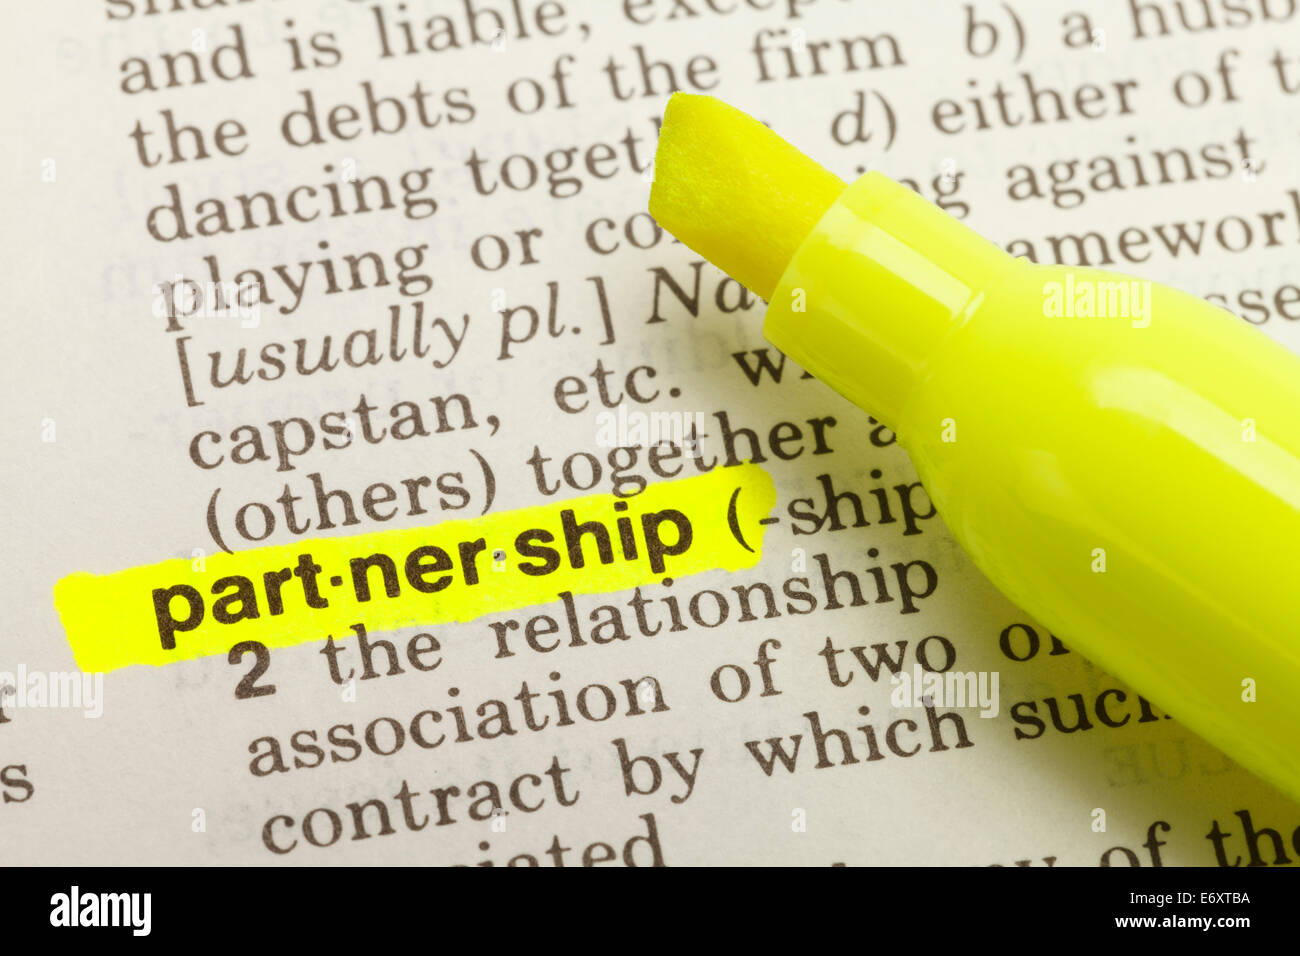 The Word Partnership Highlighted in Dictionary with Yellow Marker Highlighter Pen. - Stock Image